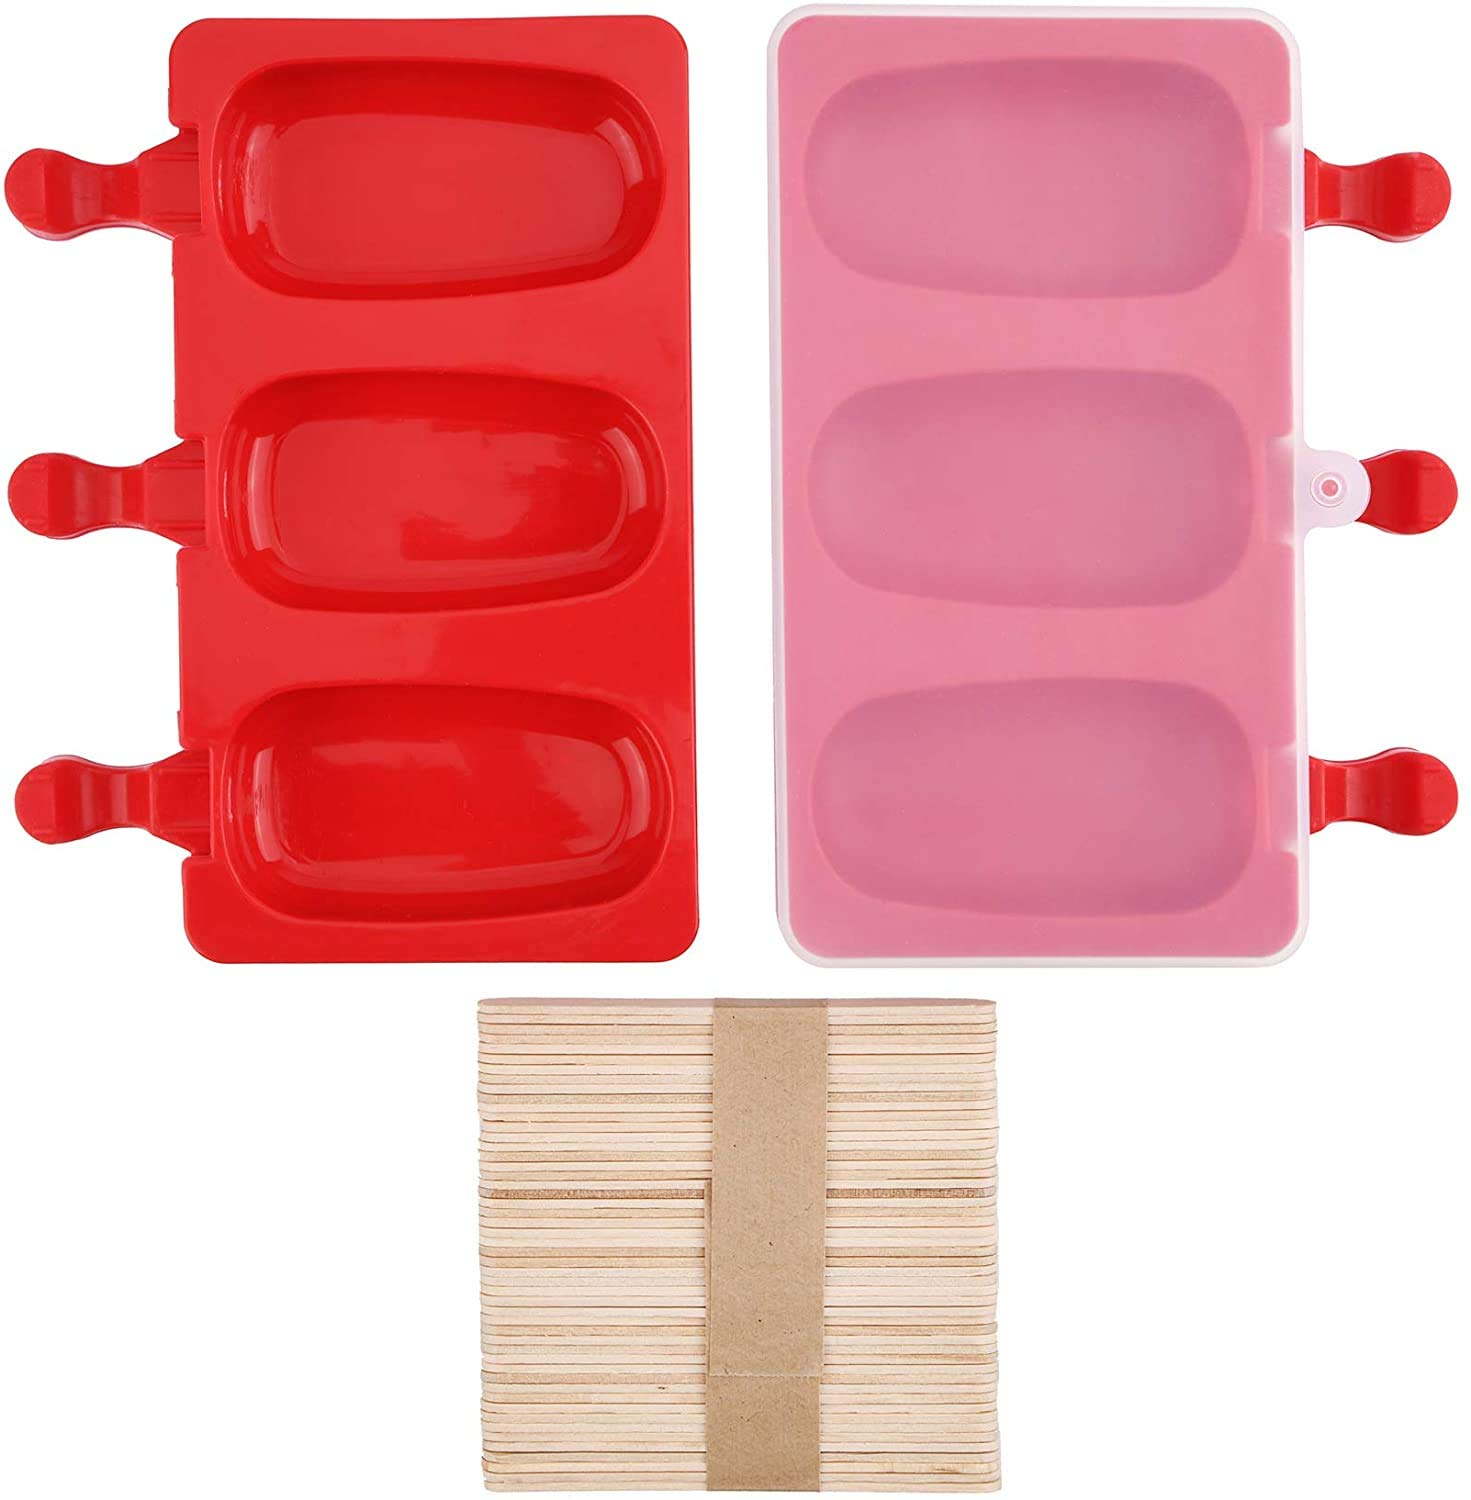 Ice Cream Bar Mold Popsicle Molds DIY Ice Cream Maker with 20 Wooden Sticks Mirenlife 3 Cavities Silicone Cute Ice Pop Mold with Lid Oval K20160717PO